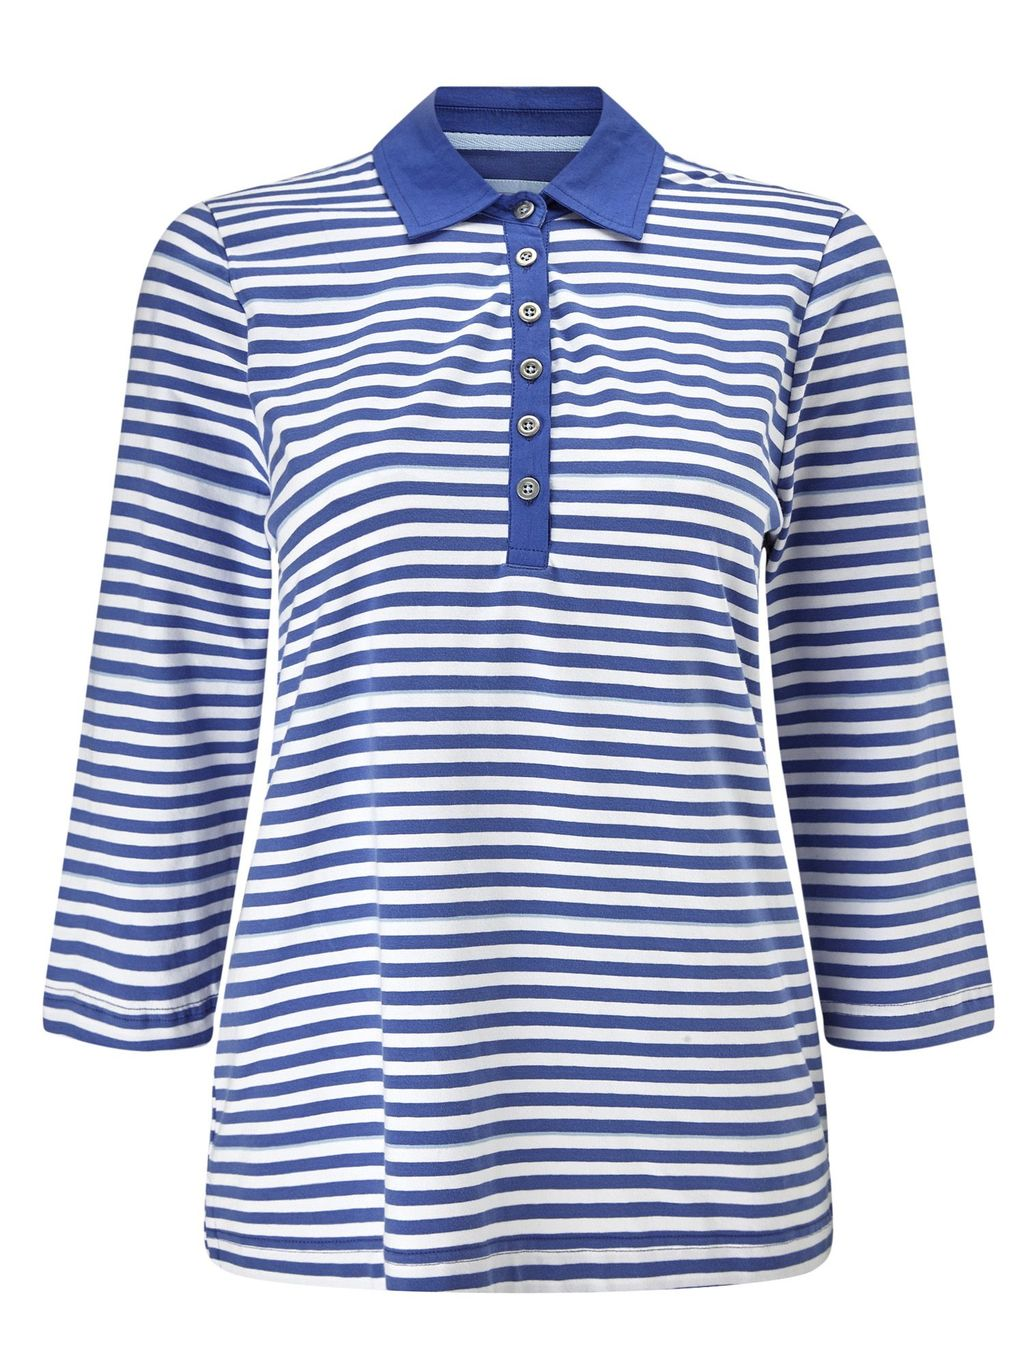 Dusty Blue Interlock Rugby, Blue - neckline: shirt collar/peter pan/zip with opening; pattern: horizontal stripes; secondary colour: white; predominant colour: royal blue; occasions: casual; length: standard; style: top; fibres: cotton - stretch; fit: body skimming; bust detail: contrast pattern/fabric/detail at bust; sleeve length: 3/4 length; sleeve style: standard; pattern type: fabric; pattern size: standard; texture group: jersey - stretchy/drapey; multicoloured: multicoloured; season: s/s 2016